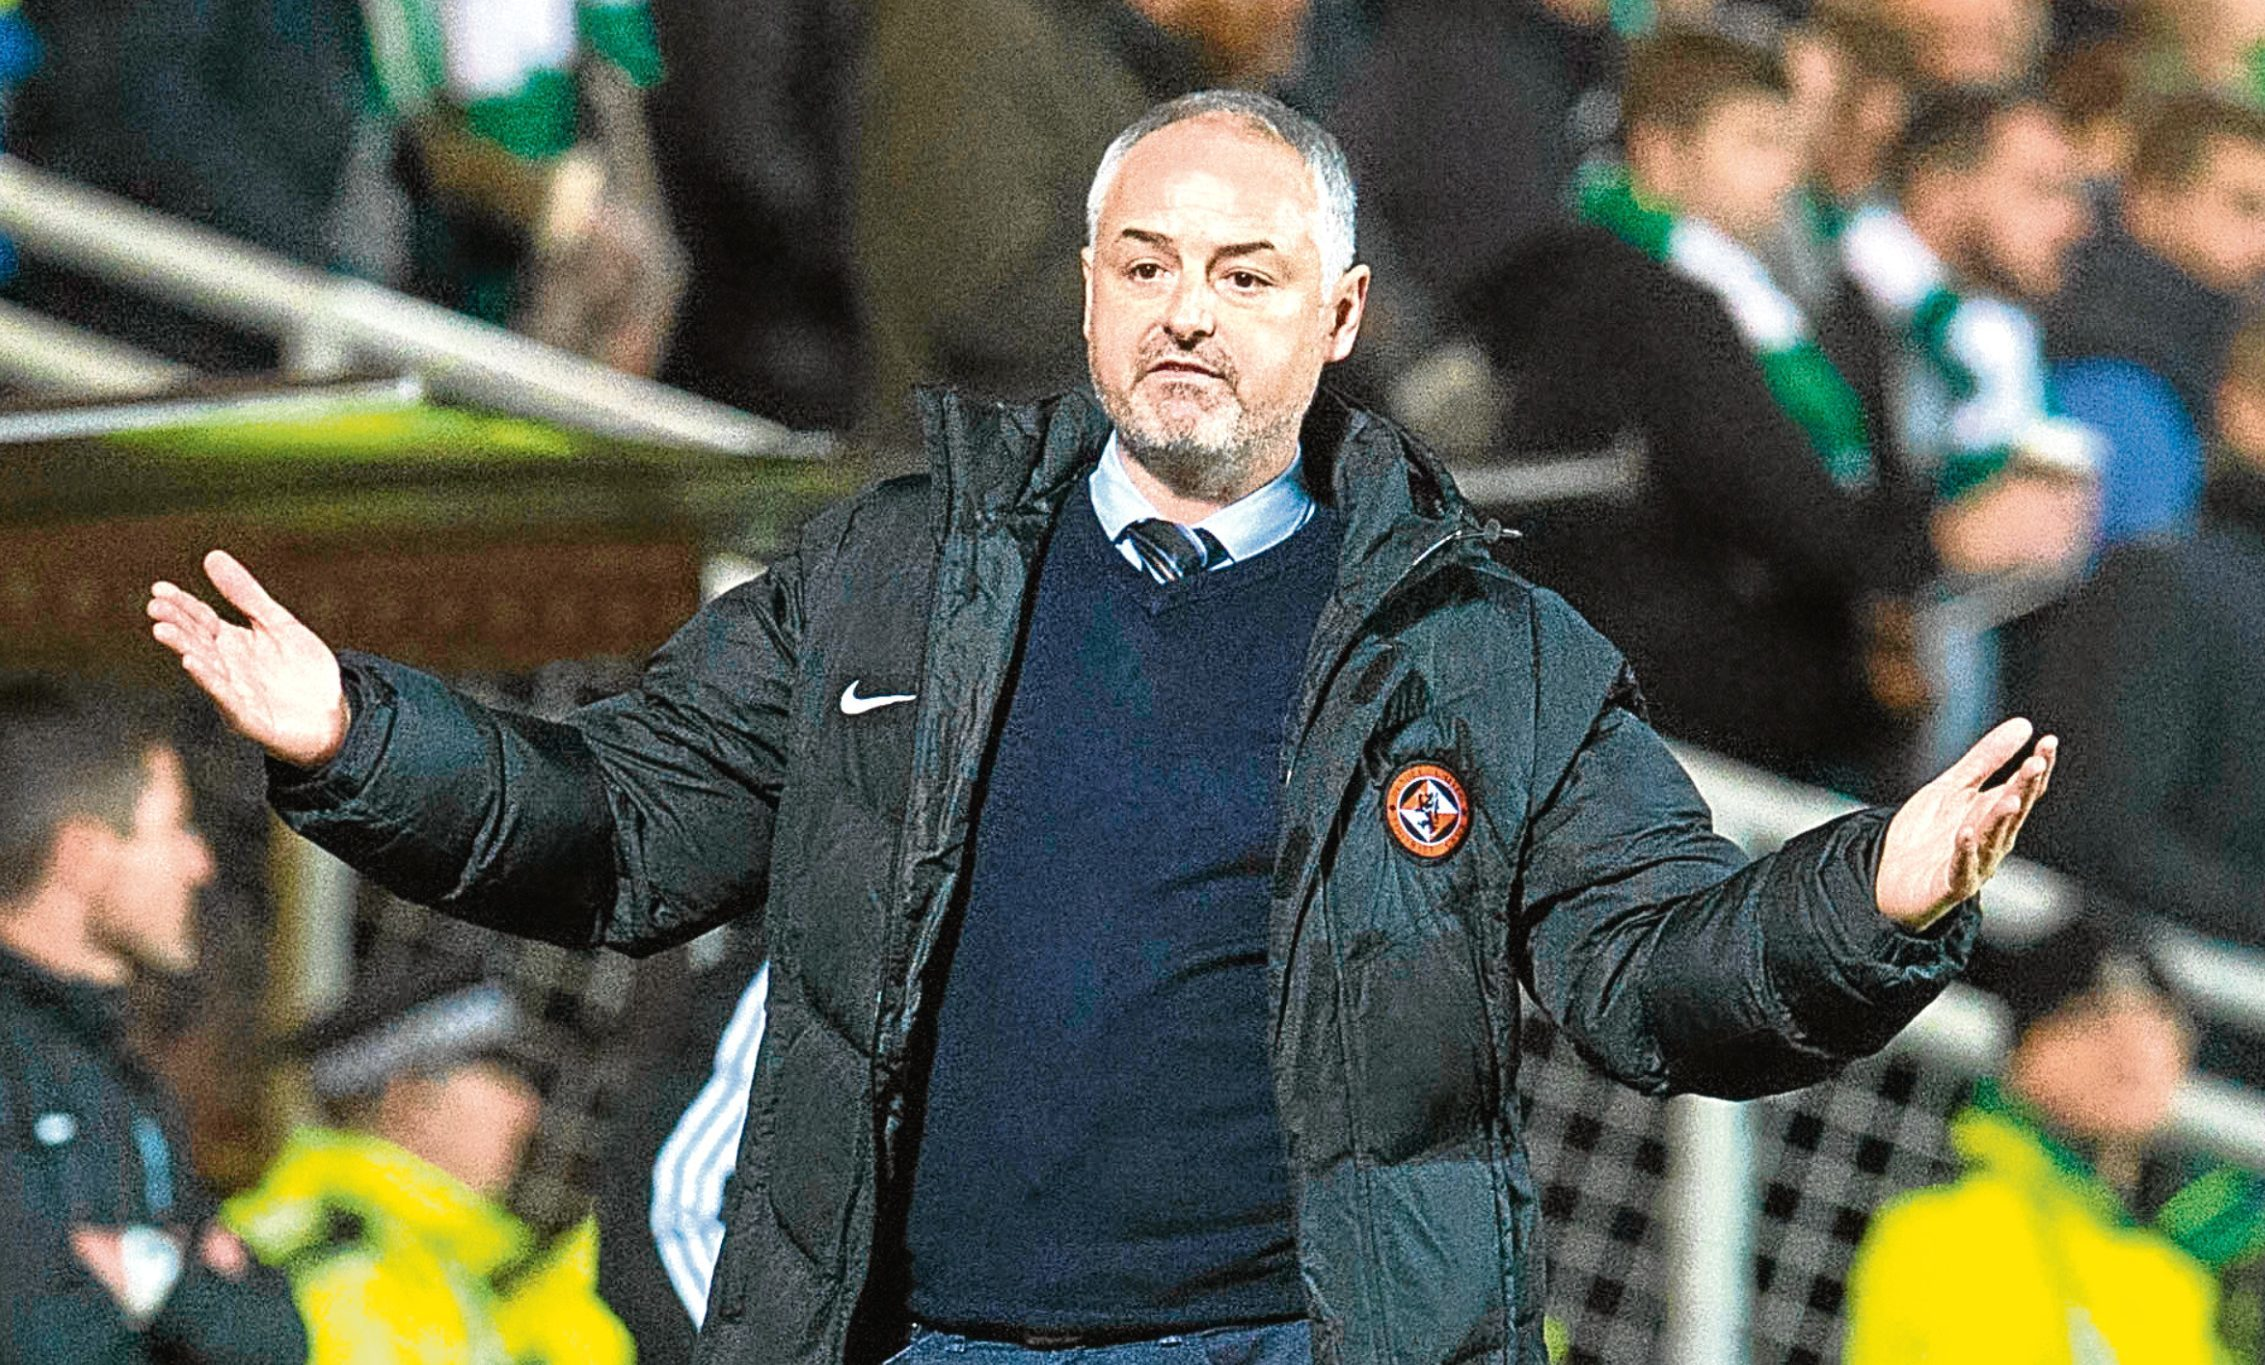 Dundee United boss Ray McKinnon knows his team are facing their most challenging period of the season.